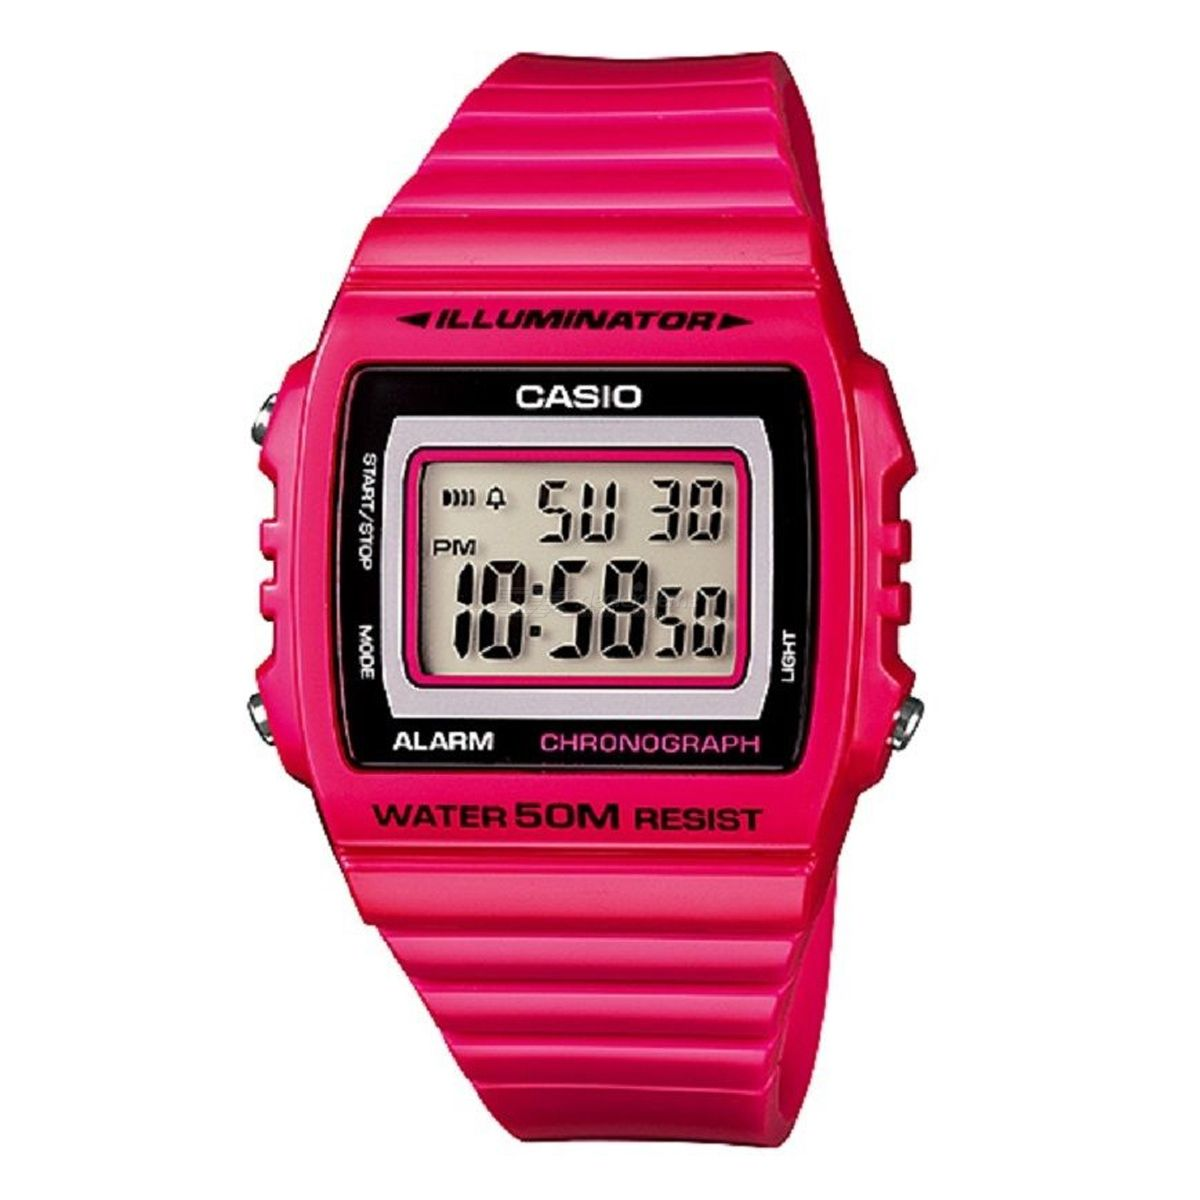 CASIO W-215H-4AVDF Men's Wristwatch - Pink (Without Box)